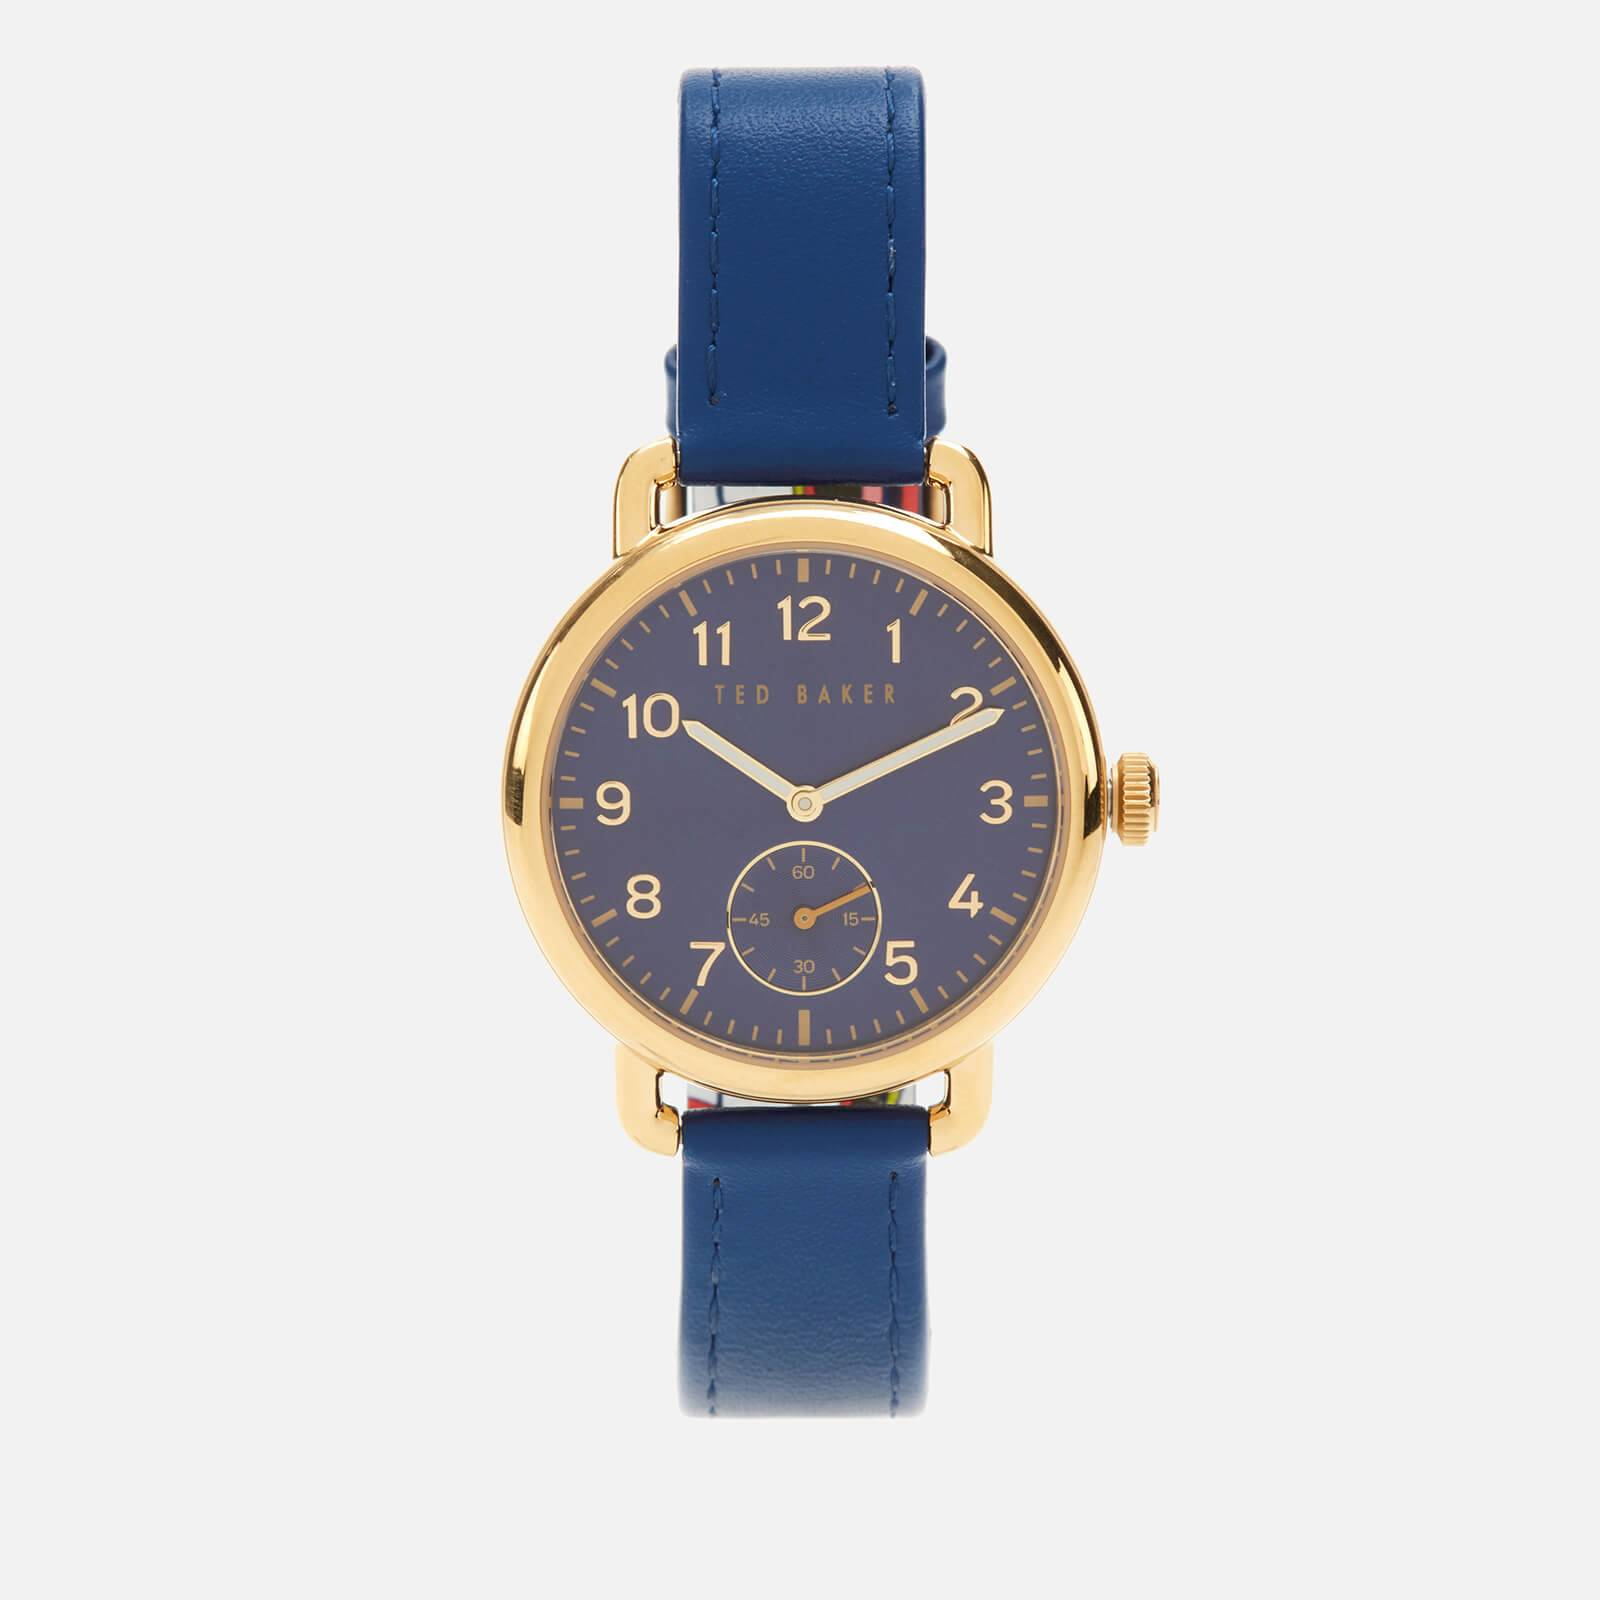 Ted Baker Women's Hannahh Watch - Navy